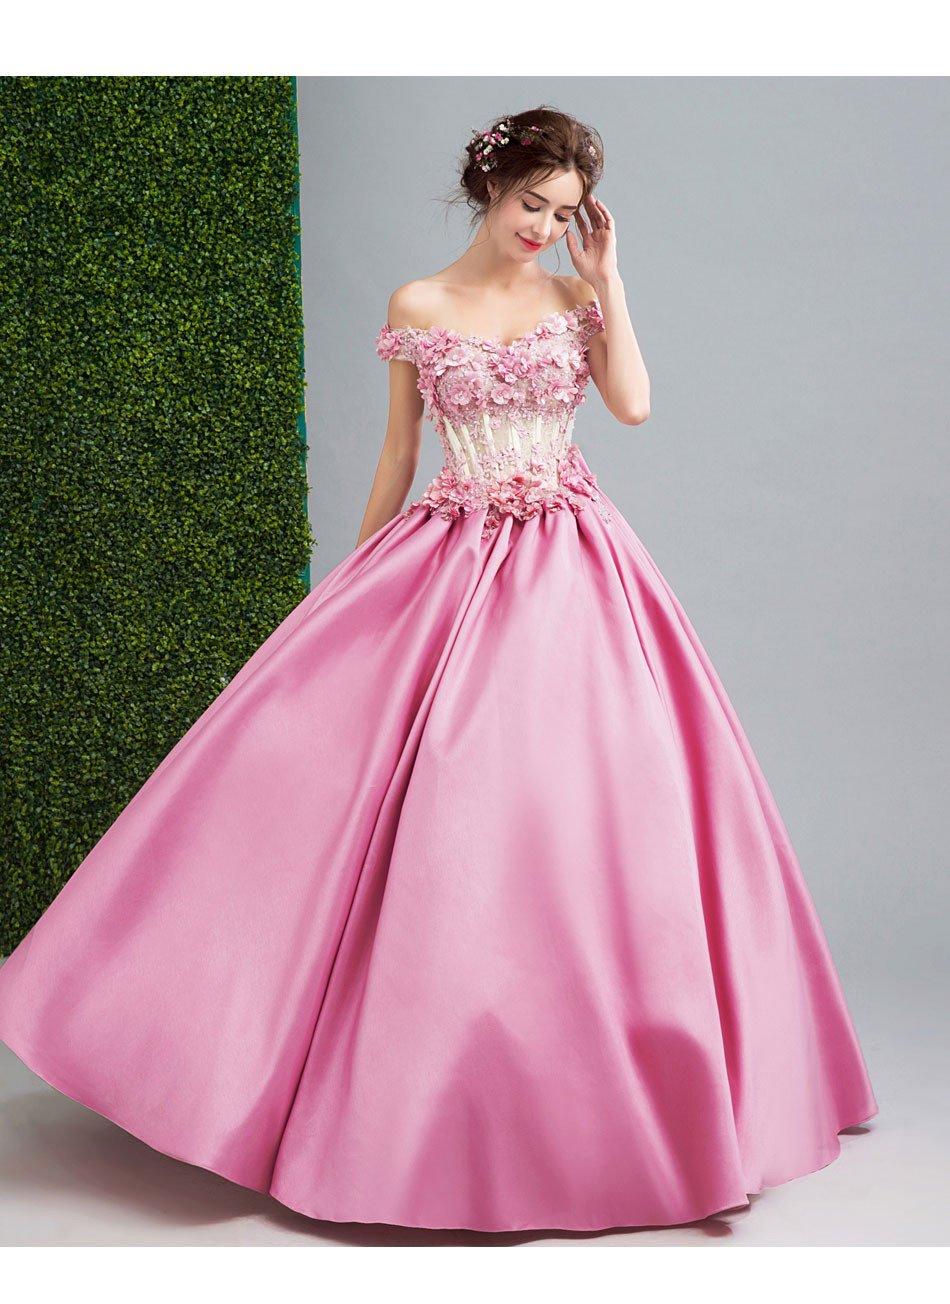 Ssyfashion 2017 New Luxury Pink Satin Lace Flower Prom Dress The